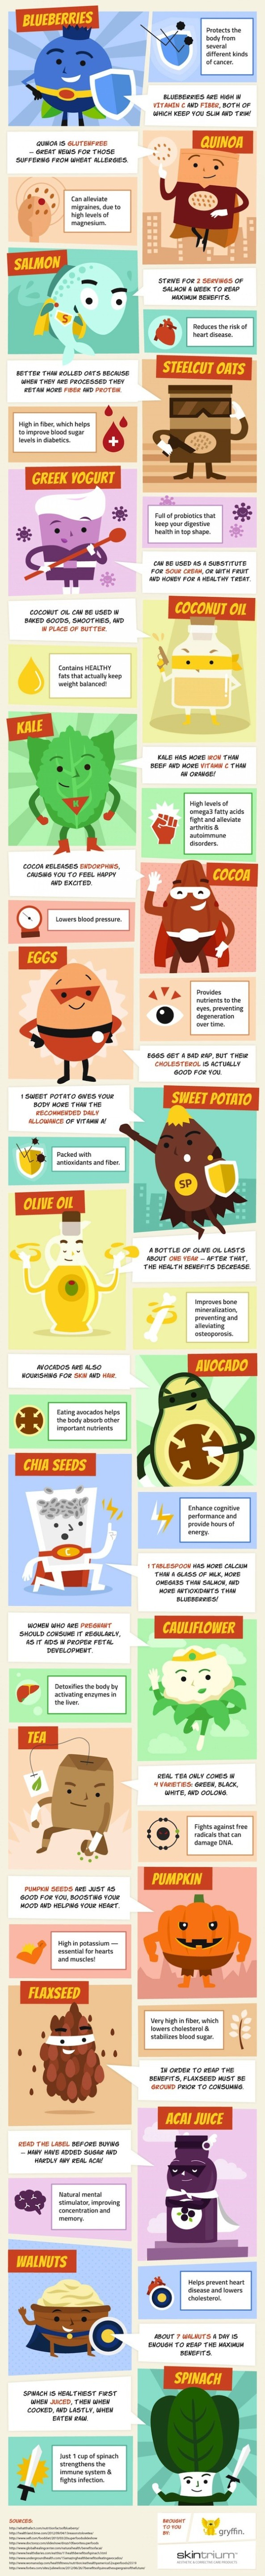 SuperfoodUltimateGuideInfographic